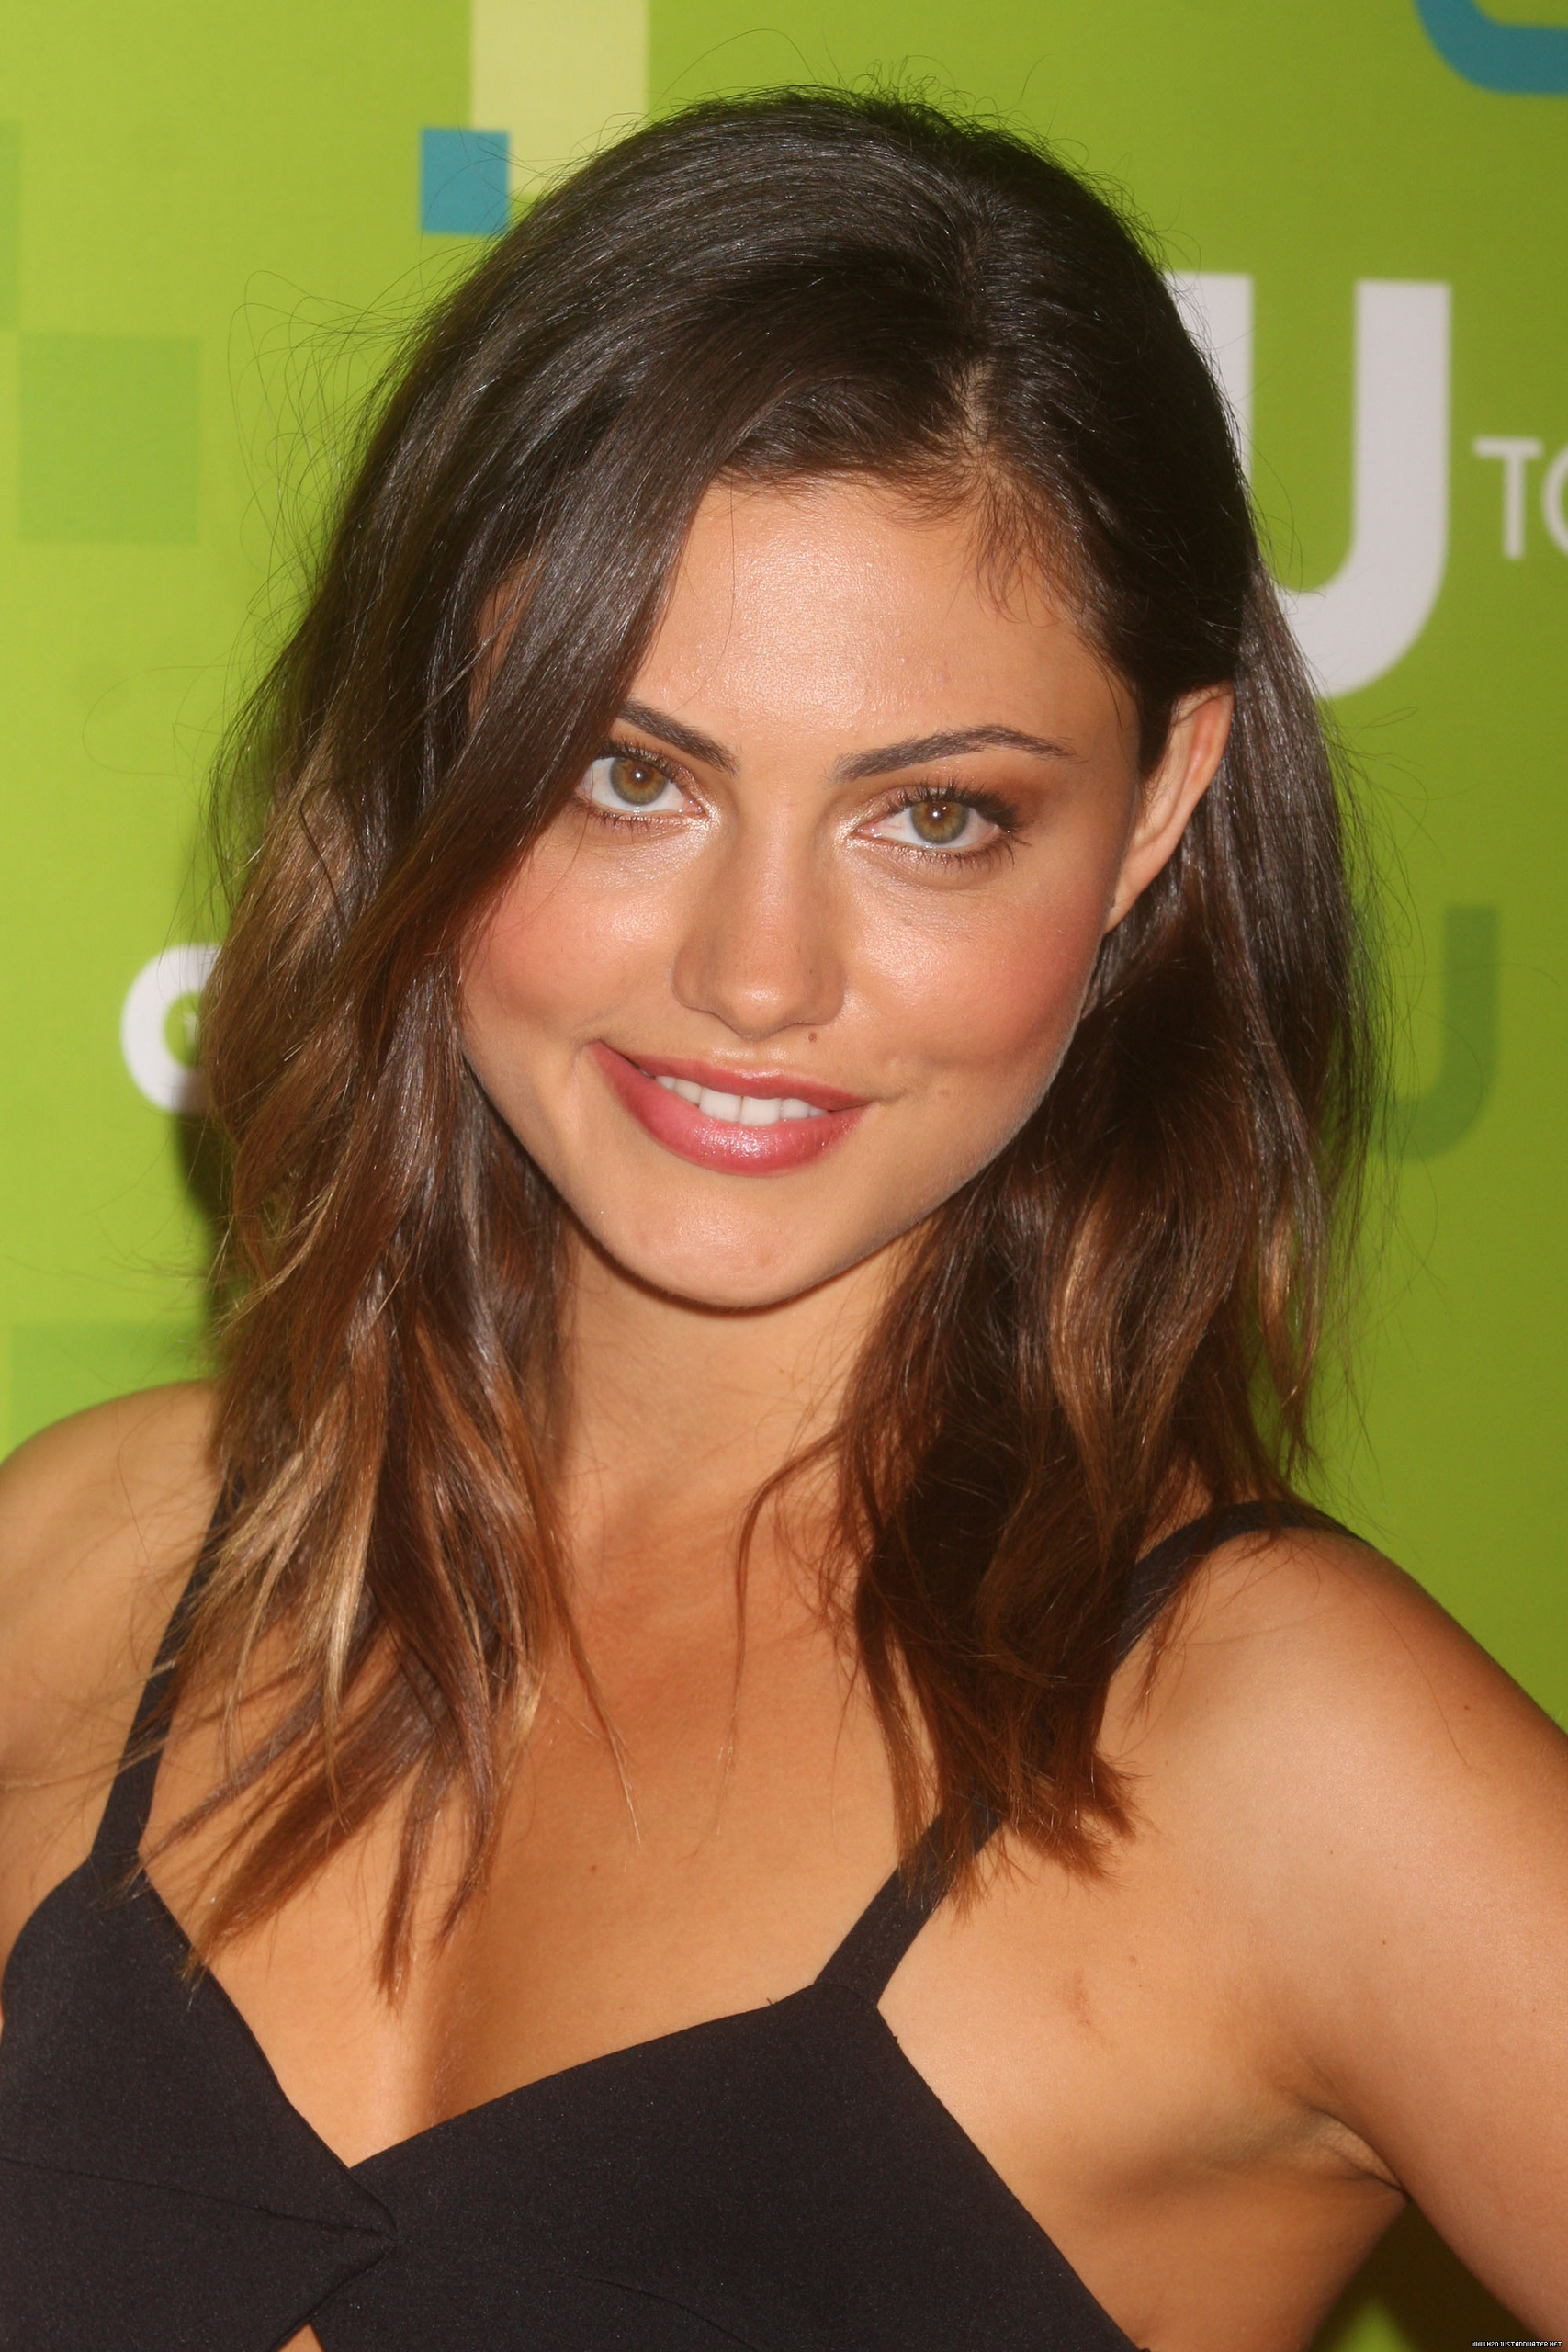 Phoebe Tonkin - Phoebe Tonkin Photo (22290258) - Fanpop